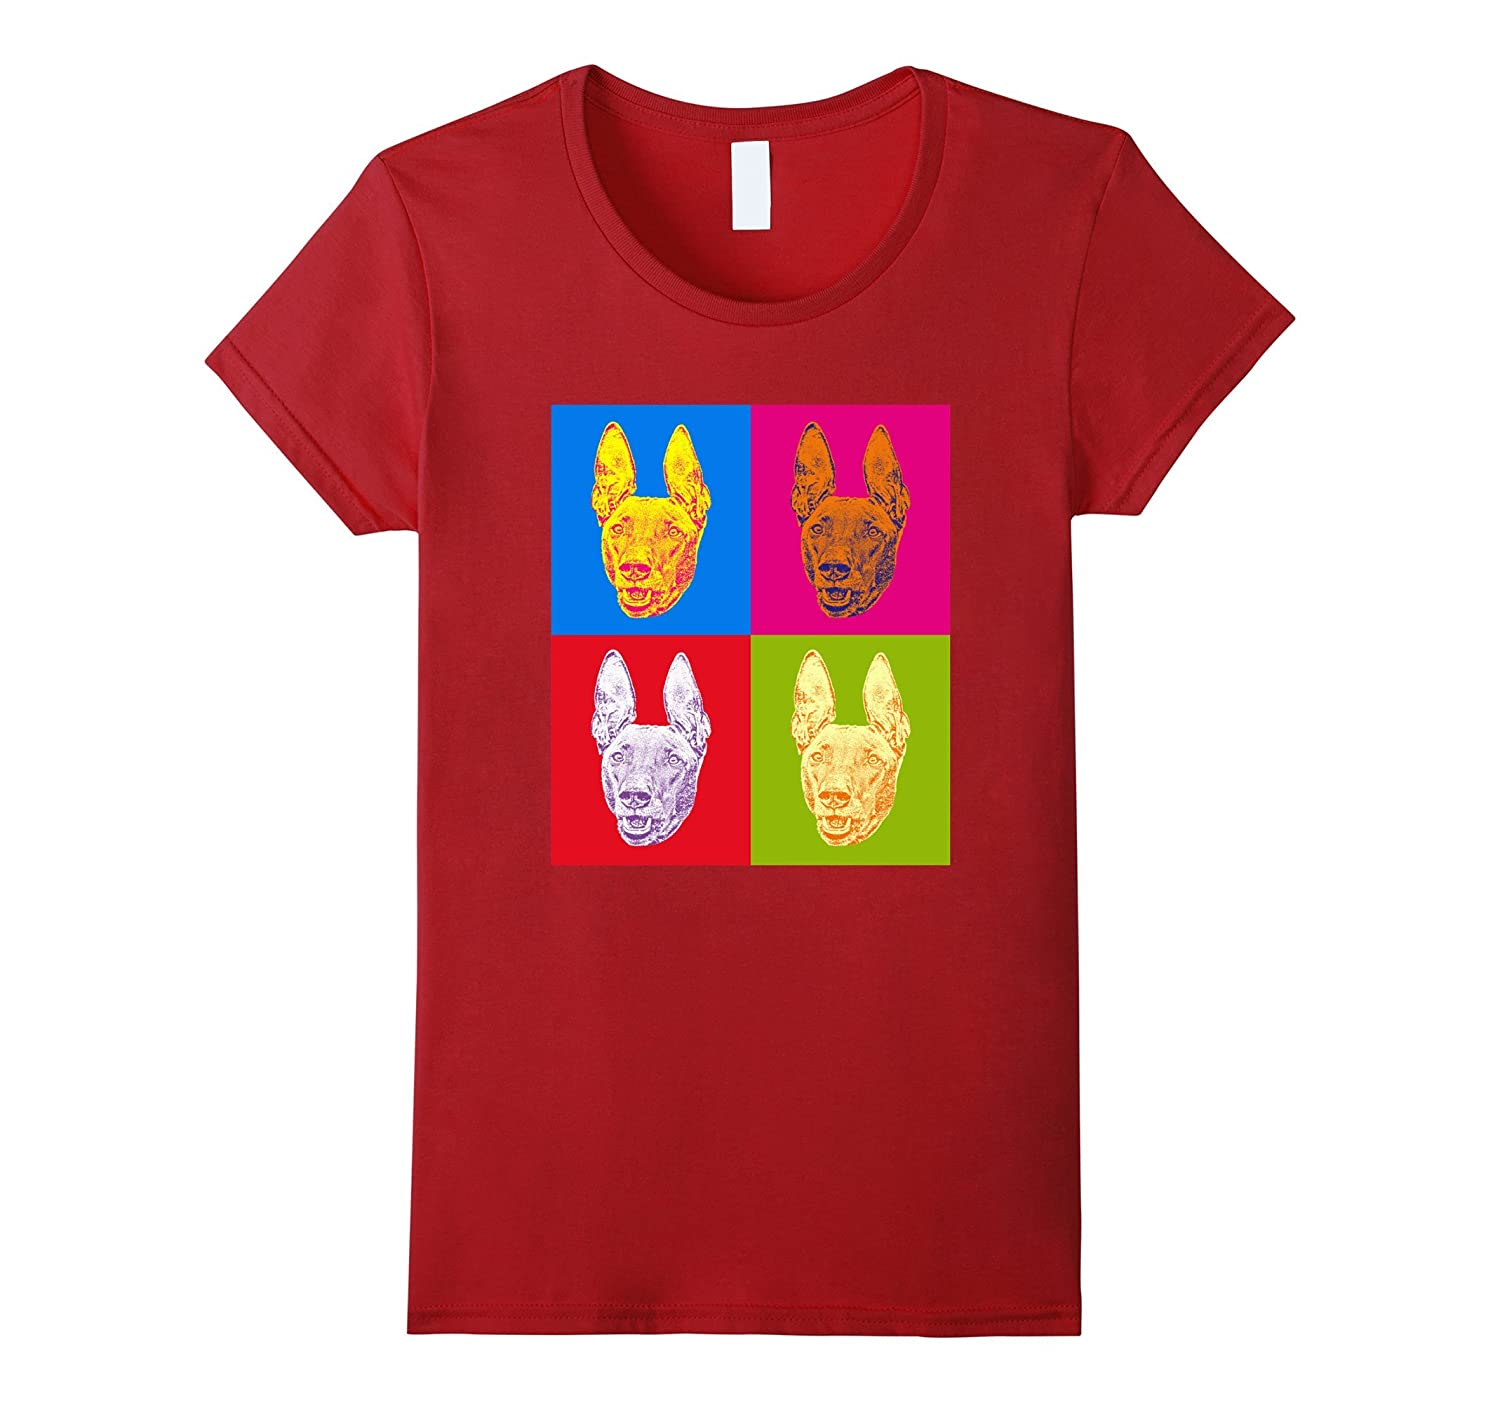 Pharaoh Hound Pop-Art Shirt